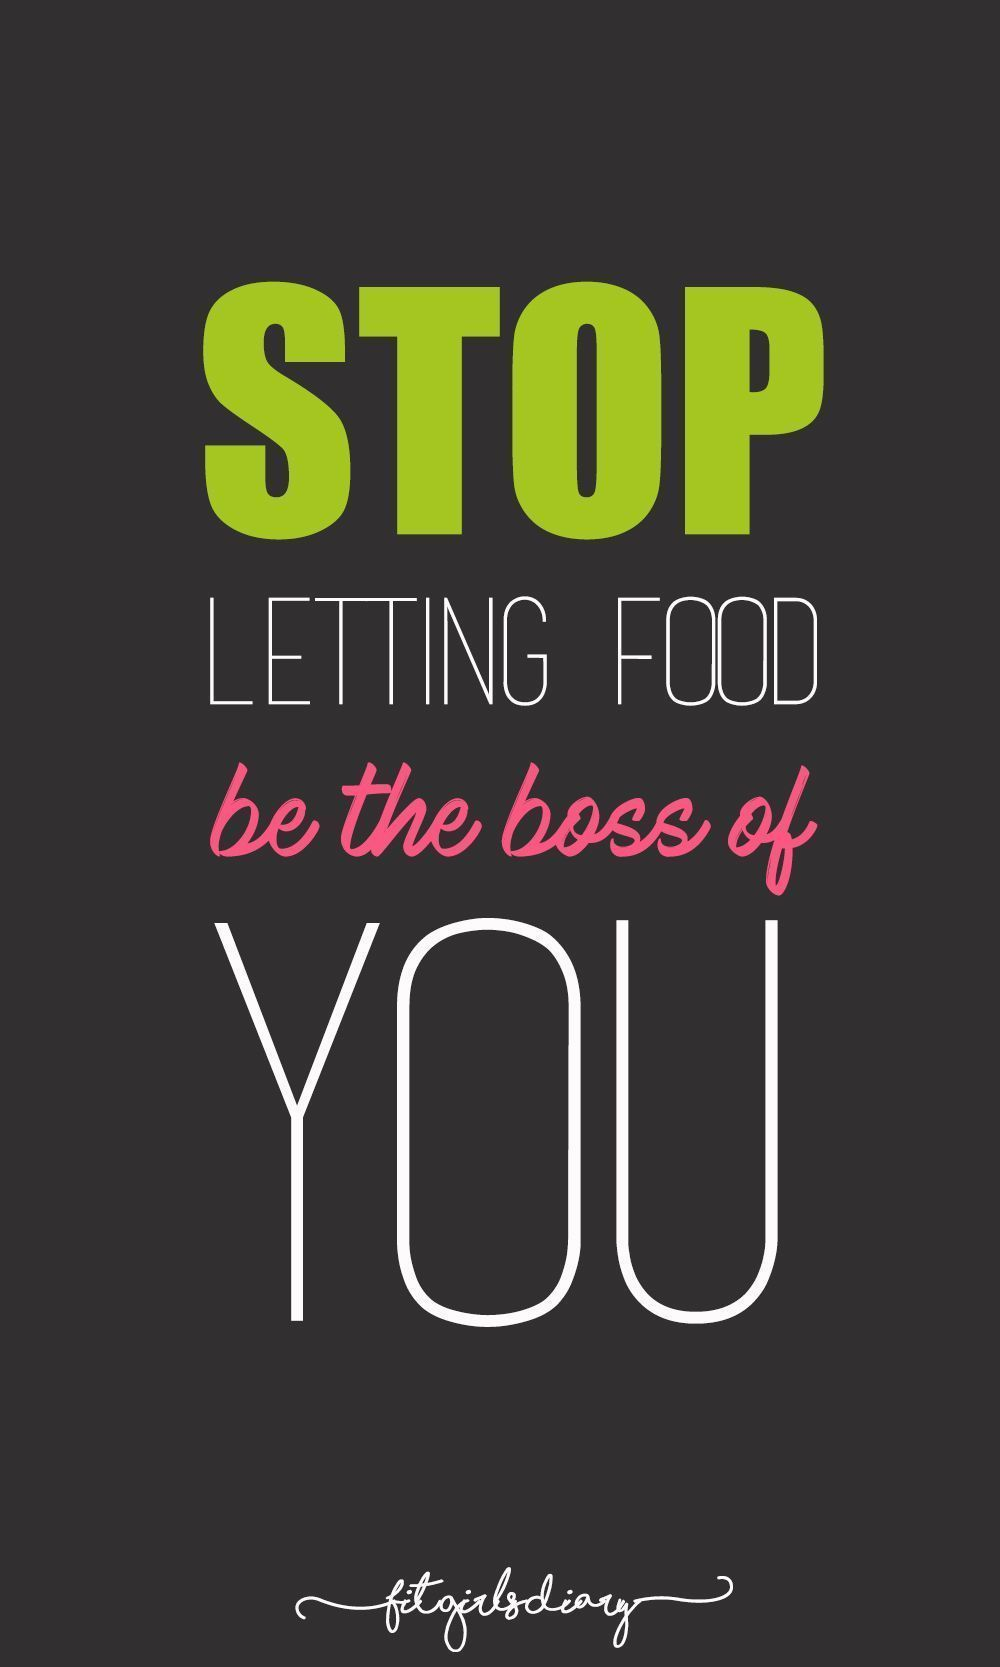 10 FREE Fitness Motivational Posters - Inspiring Quotes To Motivate You To Eat Healthy,  #Eat #Fitne...